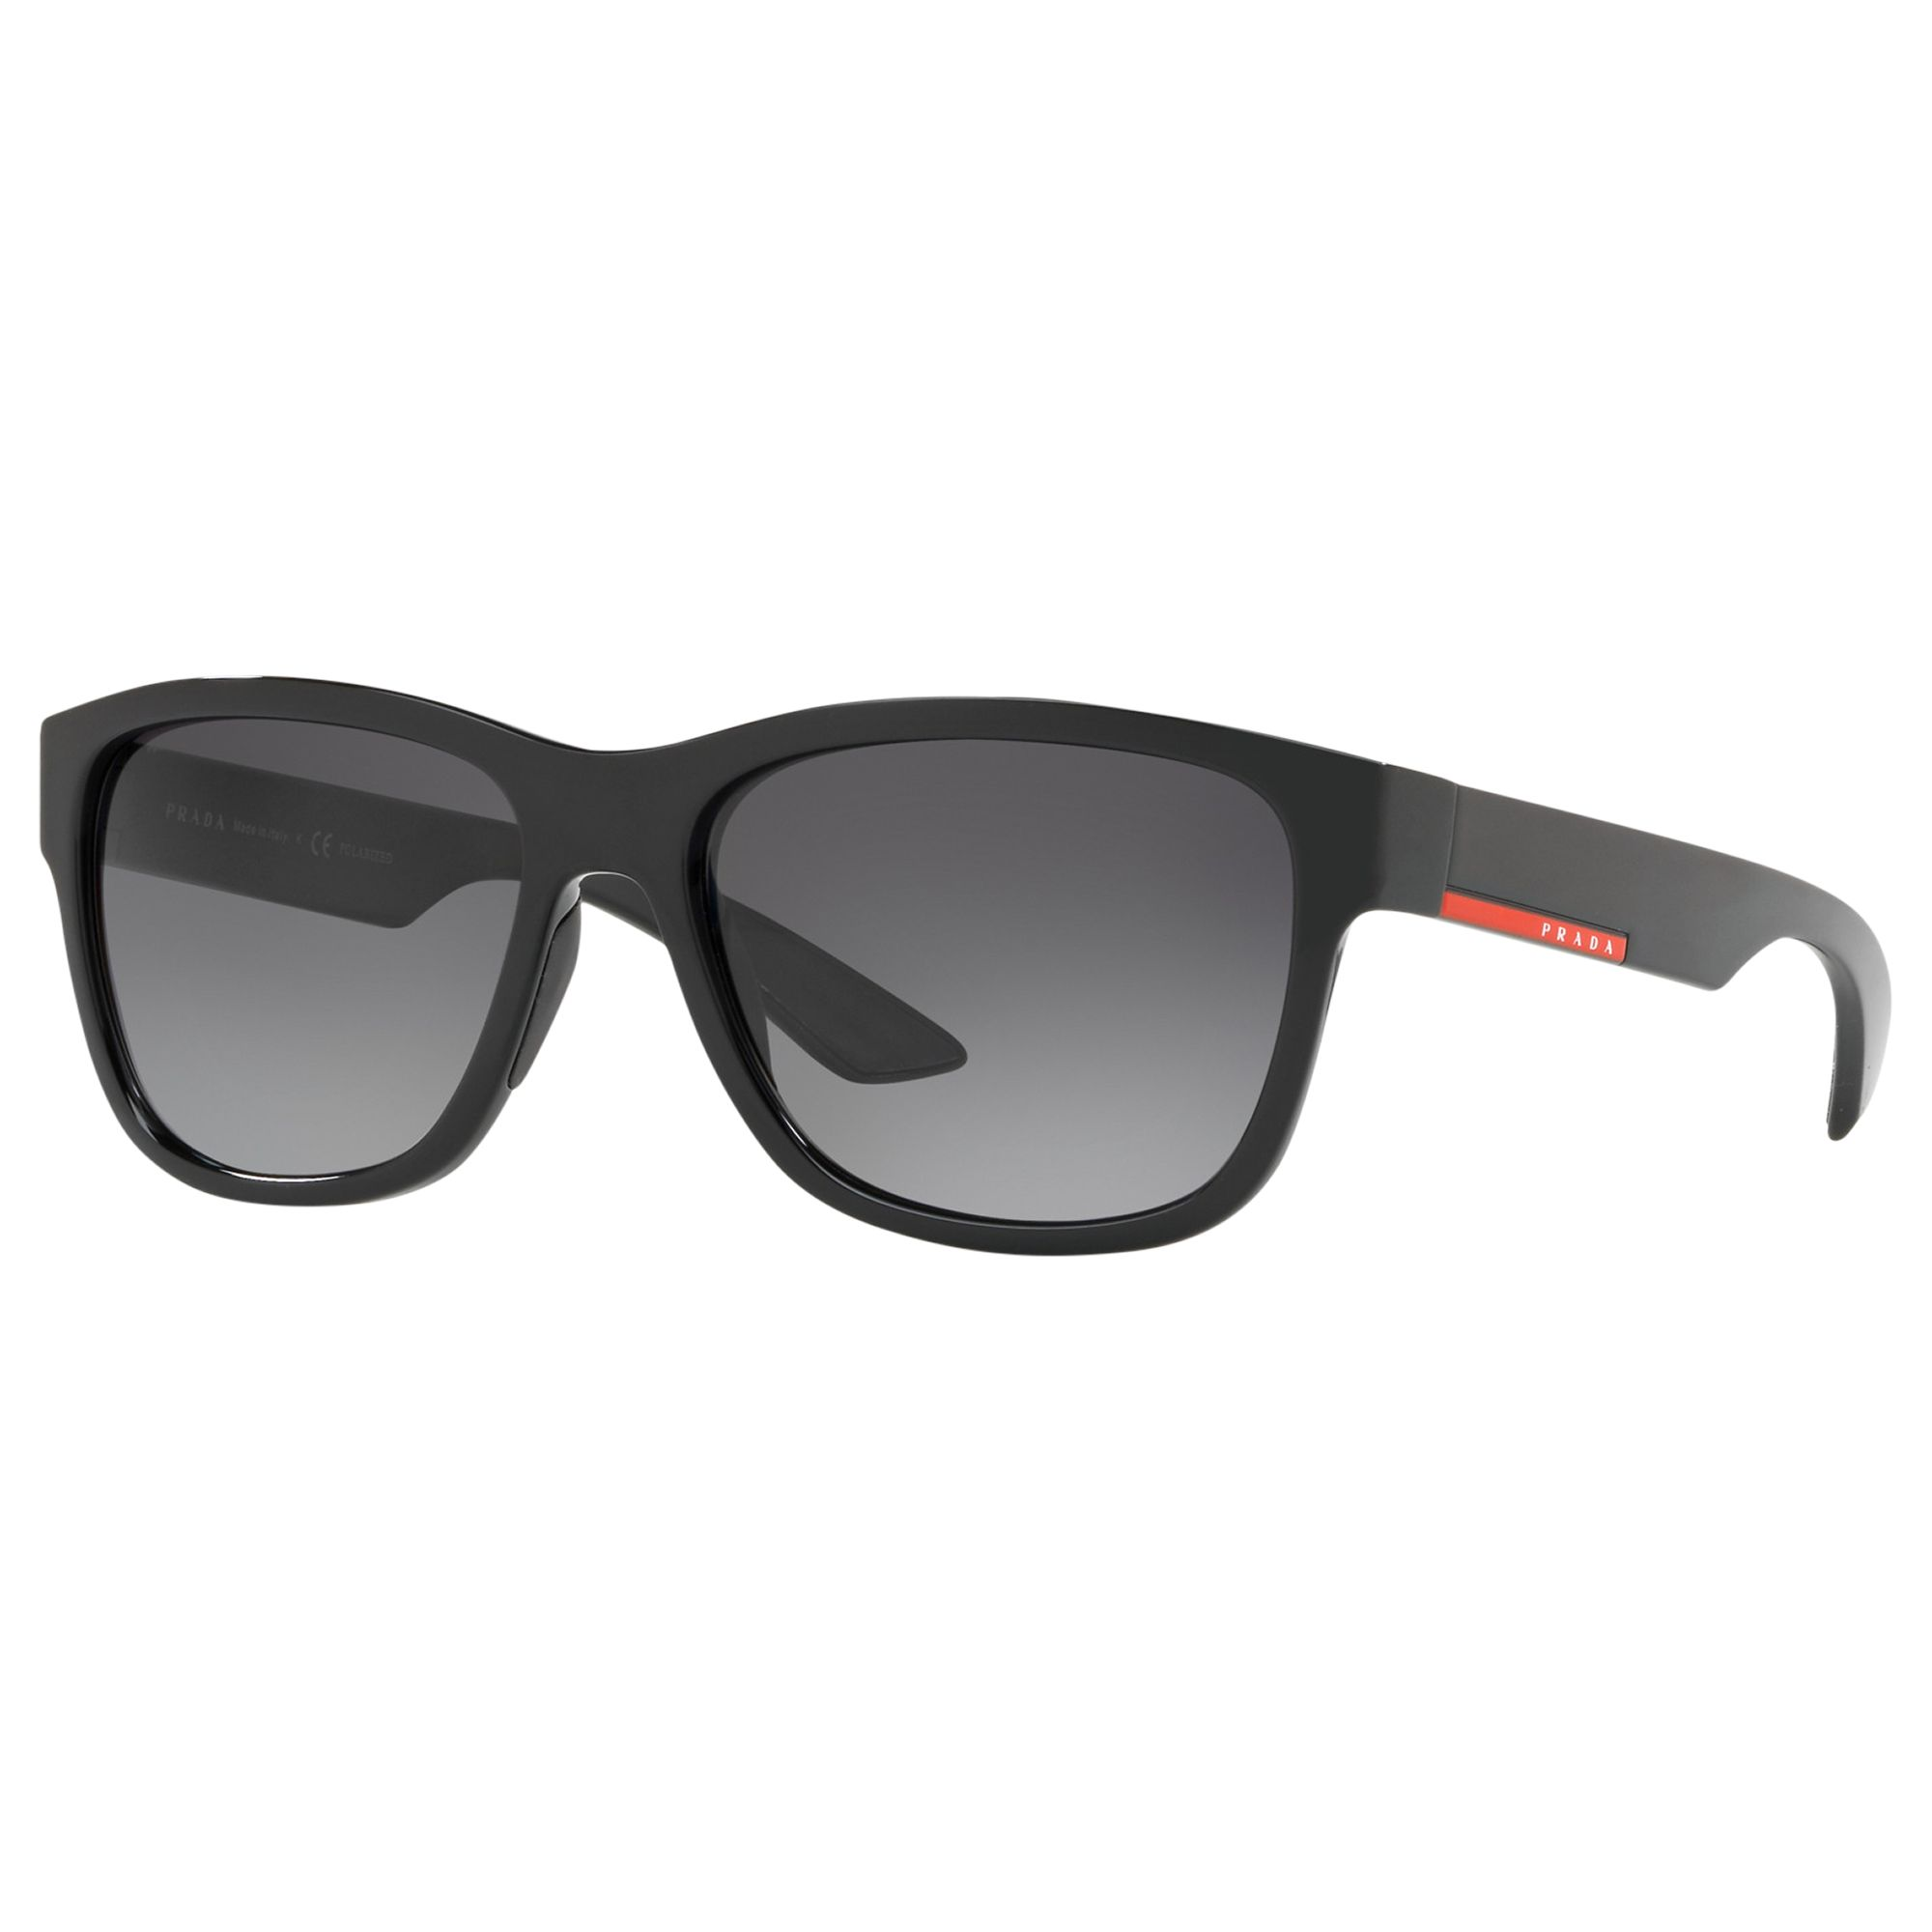 a6b3515a8ca3 Prada PS03QS Men's Rectangular Sunglasses, Black at John Lewis & Partners